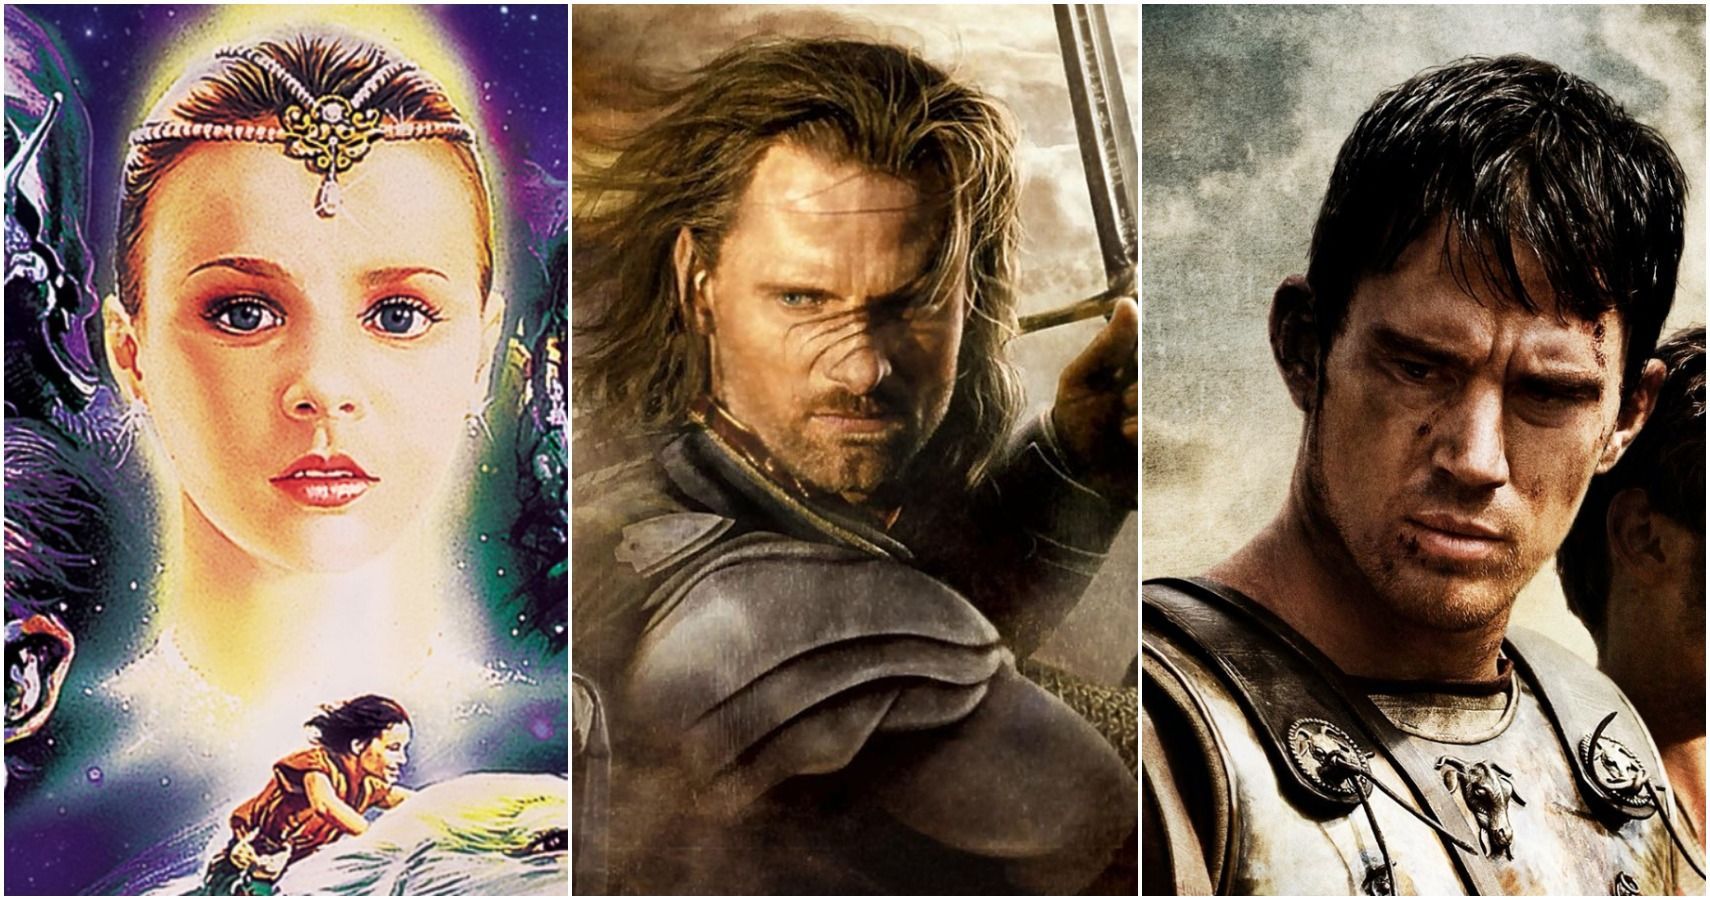 15 Films To Watch If You Like The Lord Of The Rings (Other Than The Hobbit)